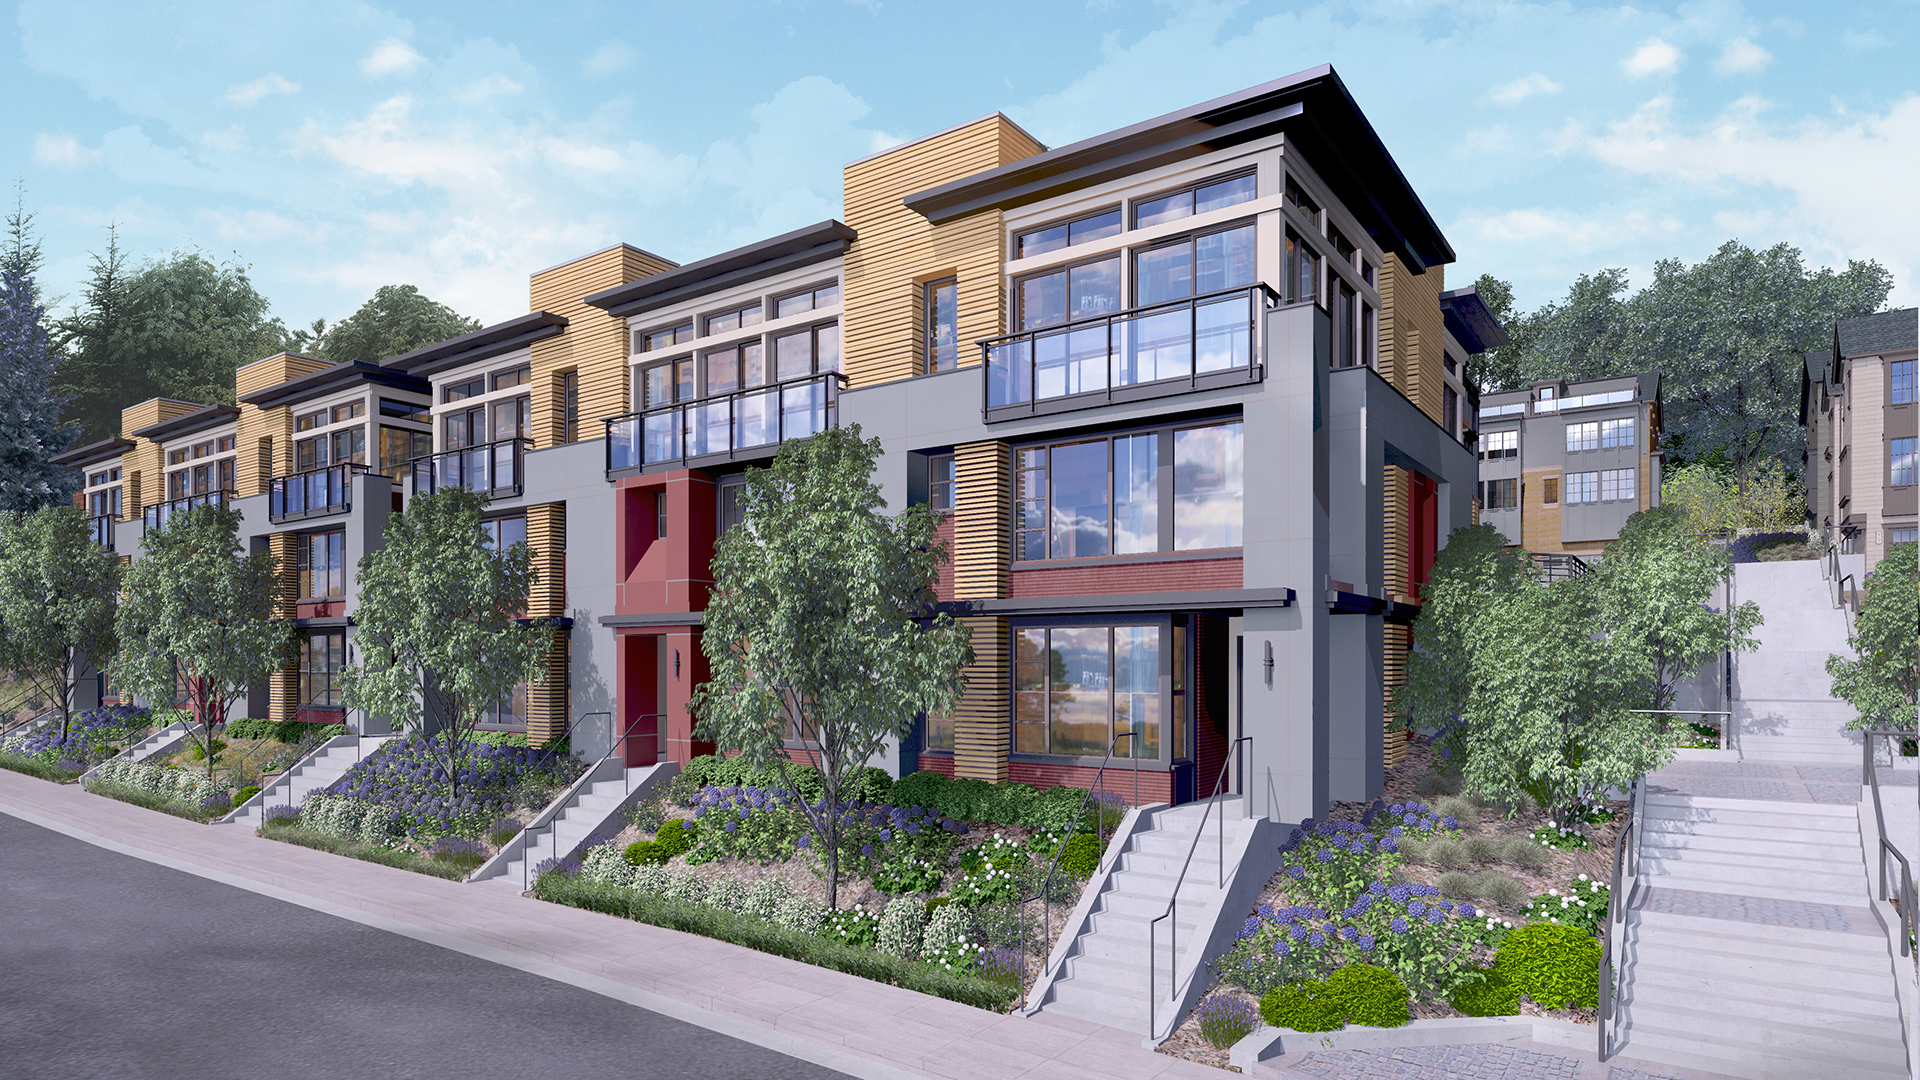 The street scene along 10th Avenue West will feature Northwest Contemporary architecture.